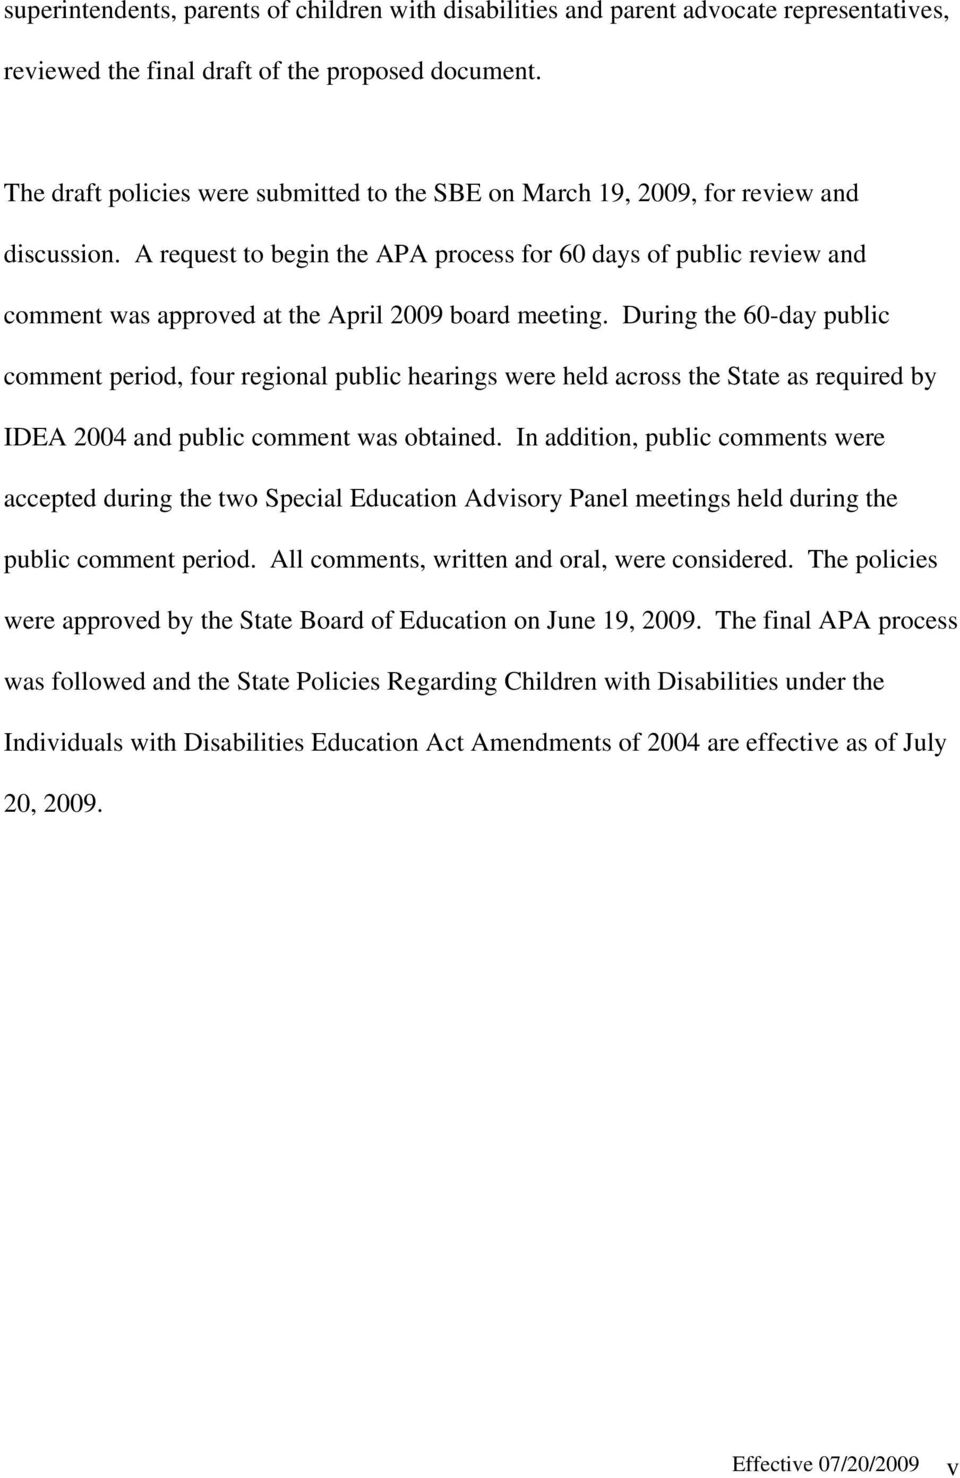 A request to begin the APA process for 60 days of public review and comment was approved at the April 2009 board meeting.